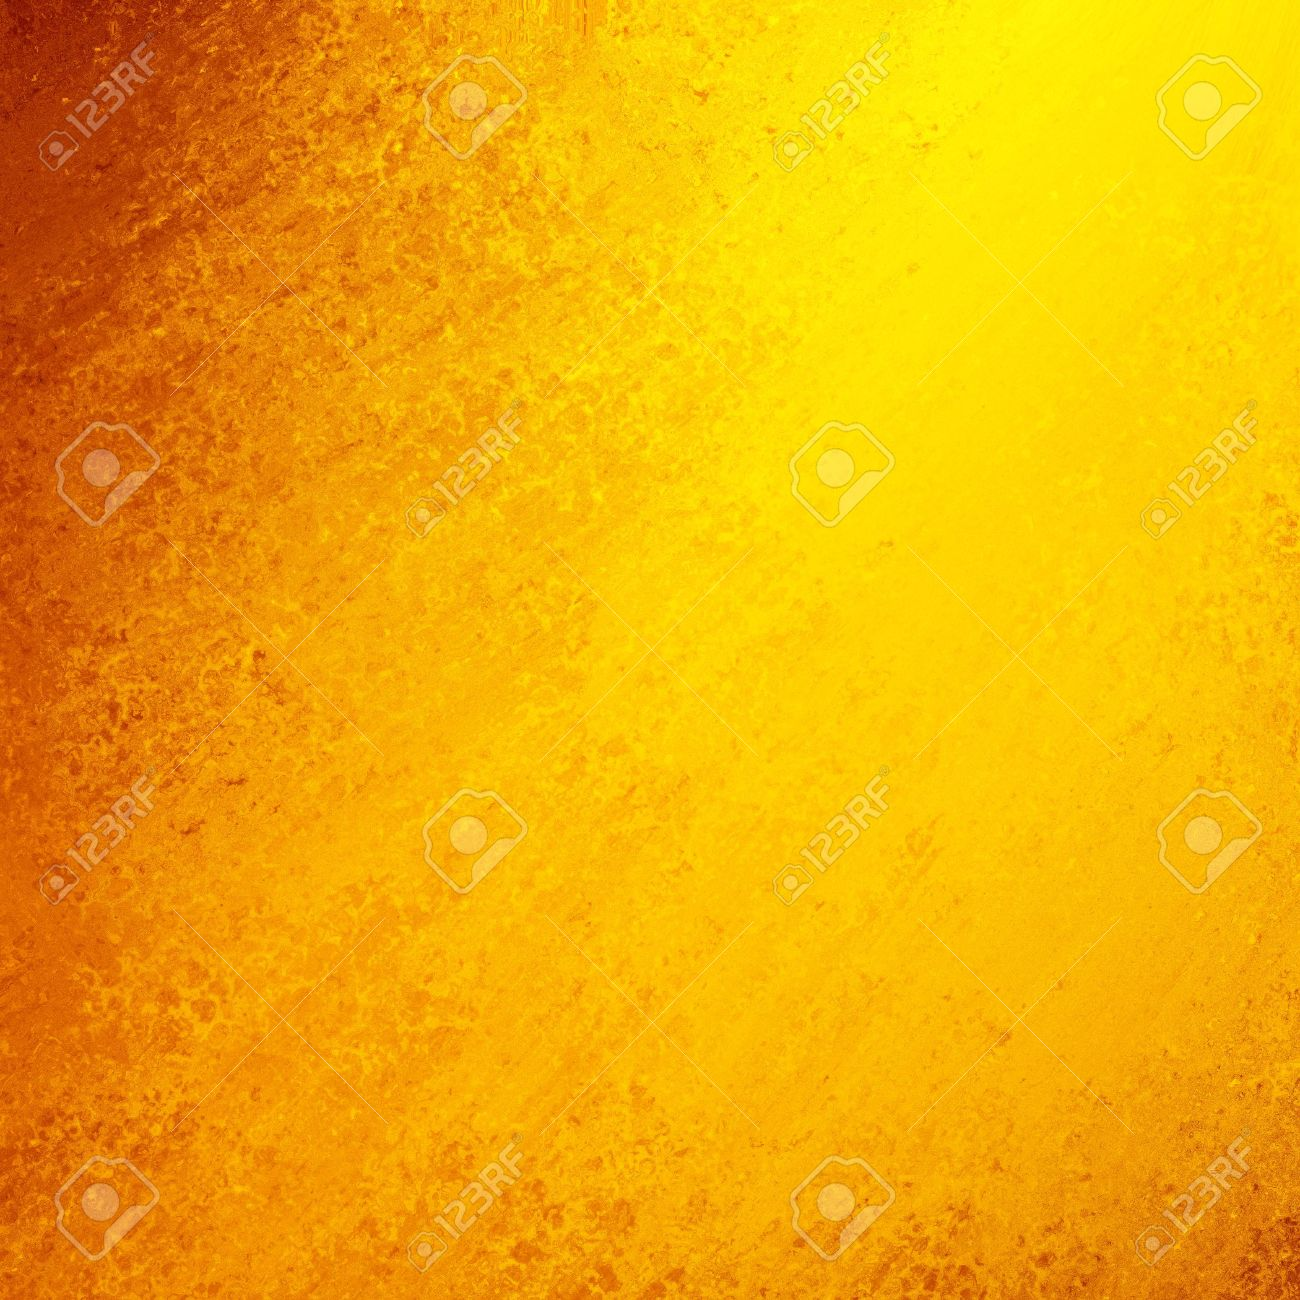 bright smeared gold paint with orange grunge border, bright sunny